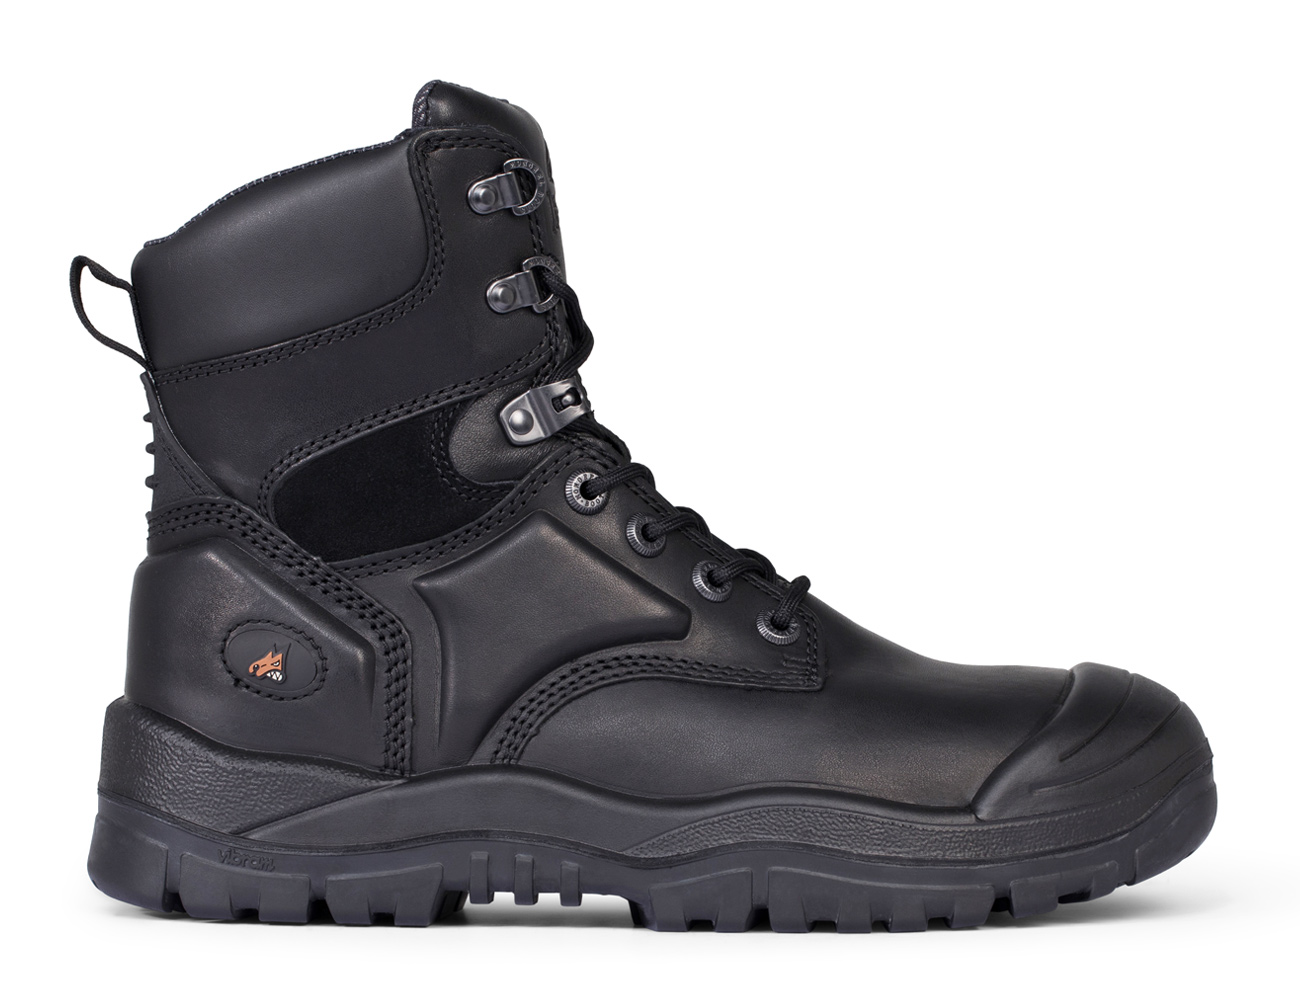 High Leg Lace Up Boot With Scuff Cap - Black